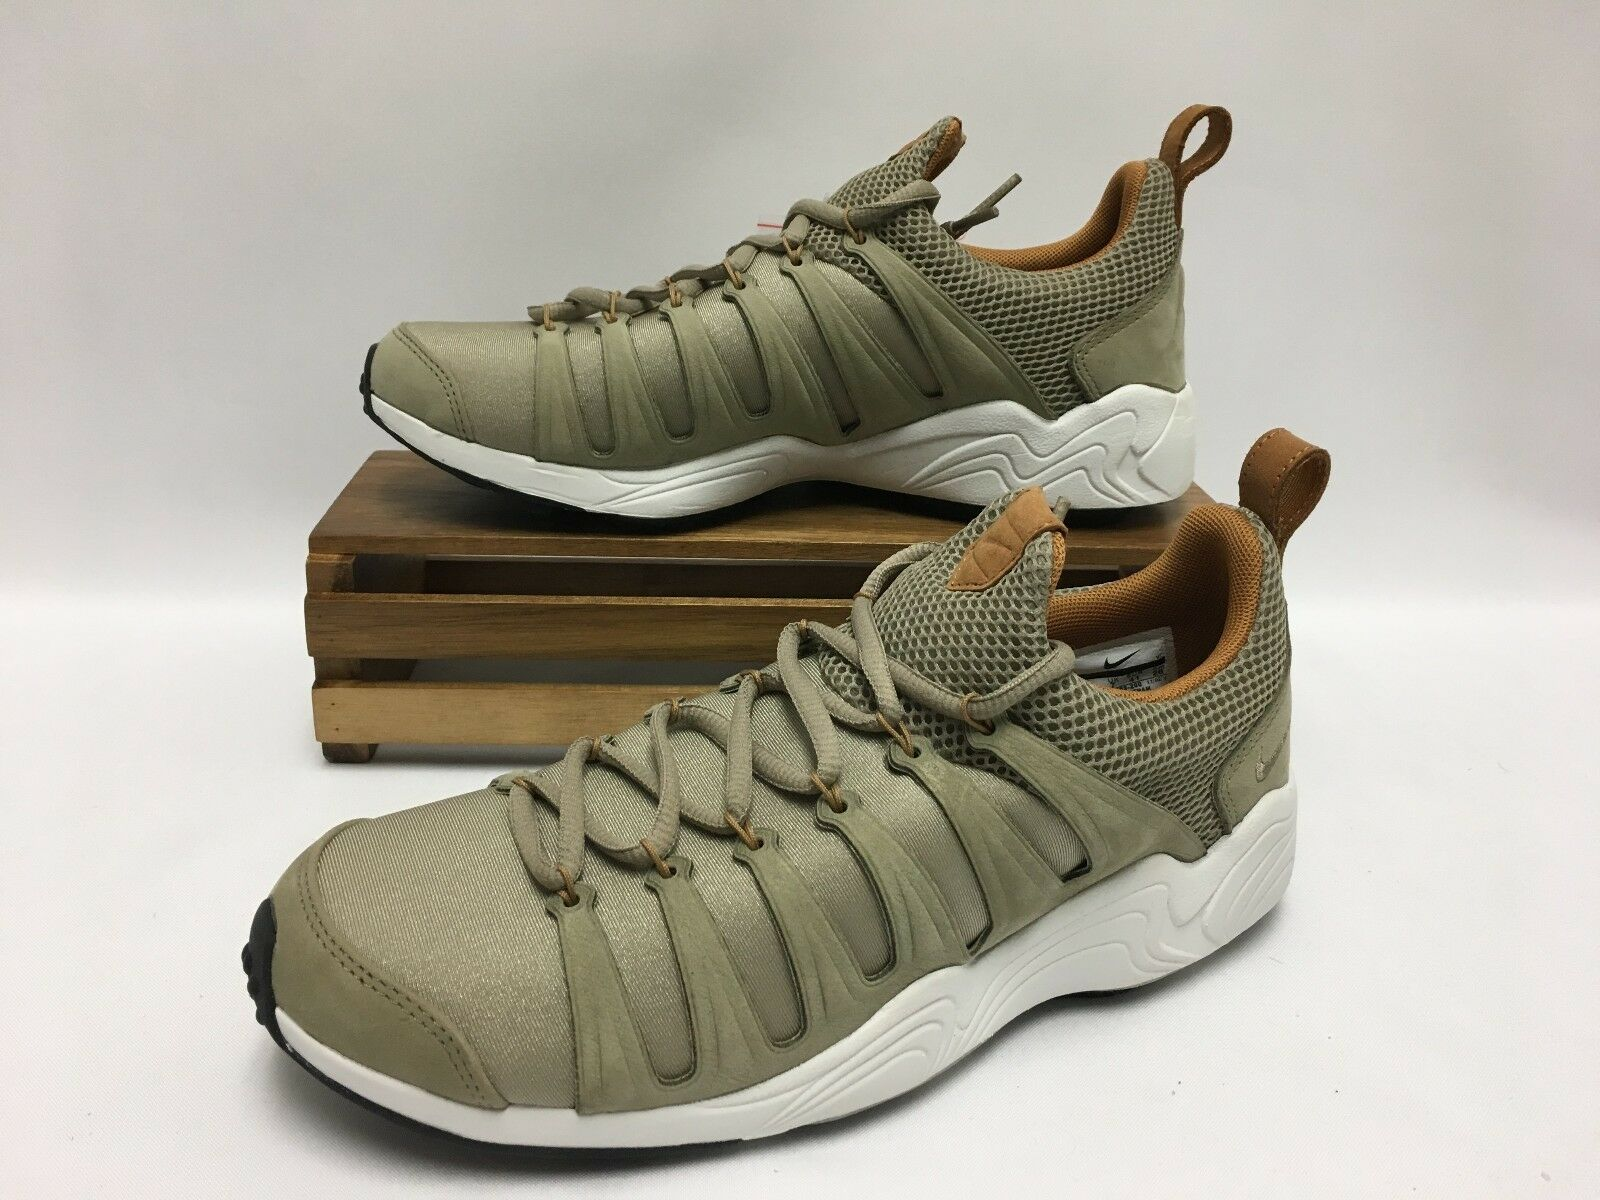 Nike Air Zoom Spirimic shoes Bamboo Brown 881983-200 Men's Size 8 or 8.5 NWOB